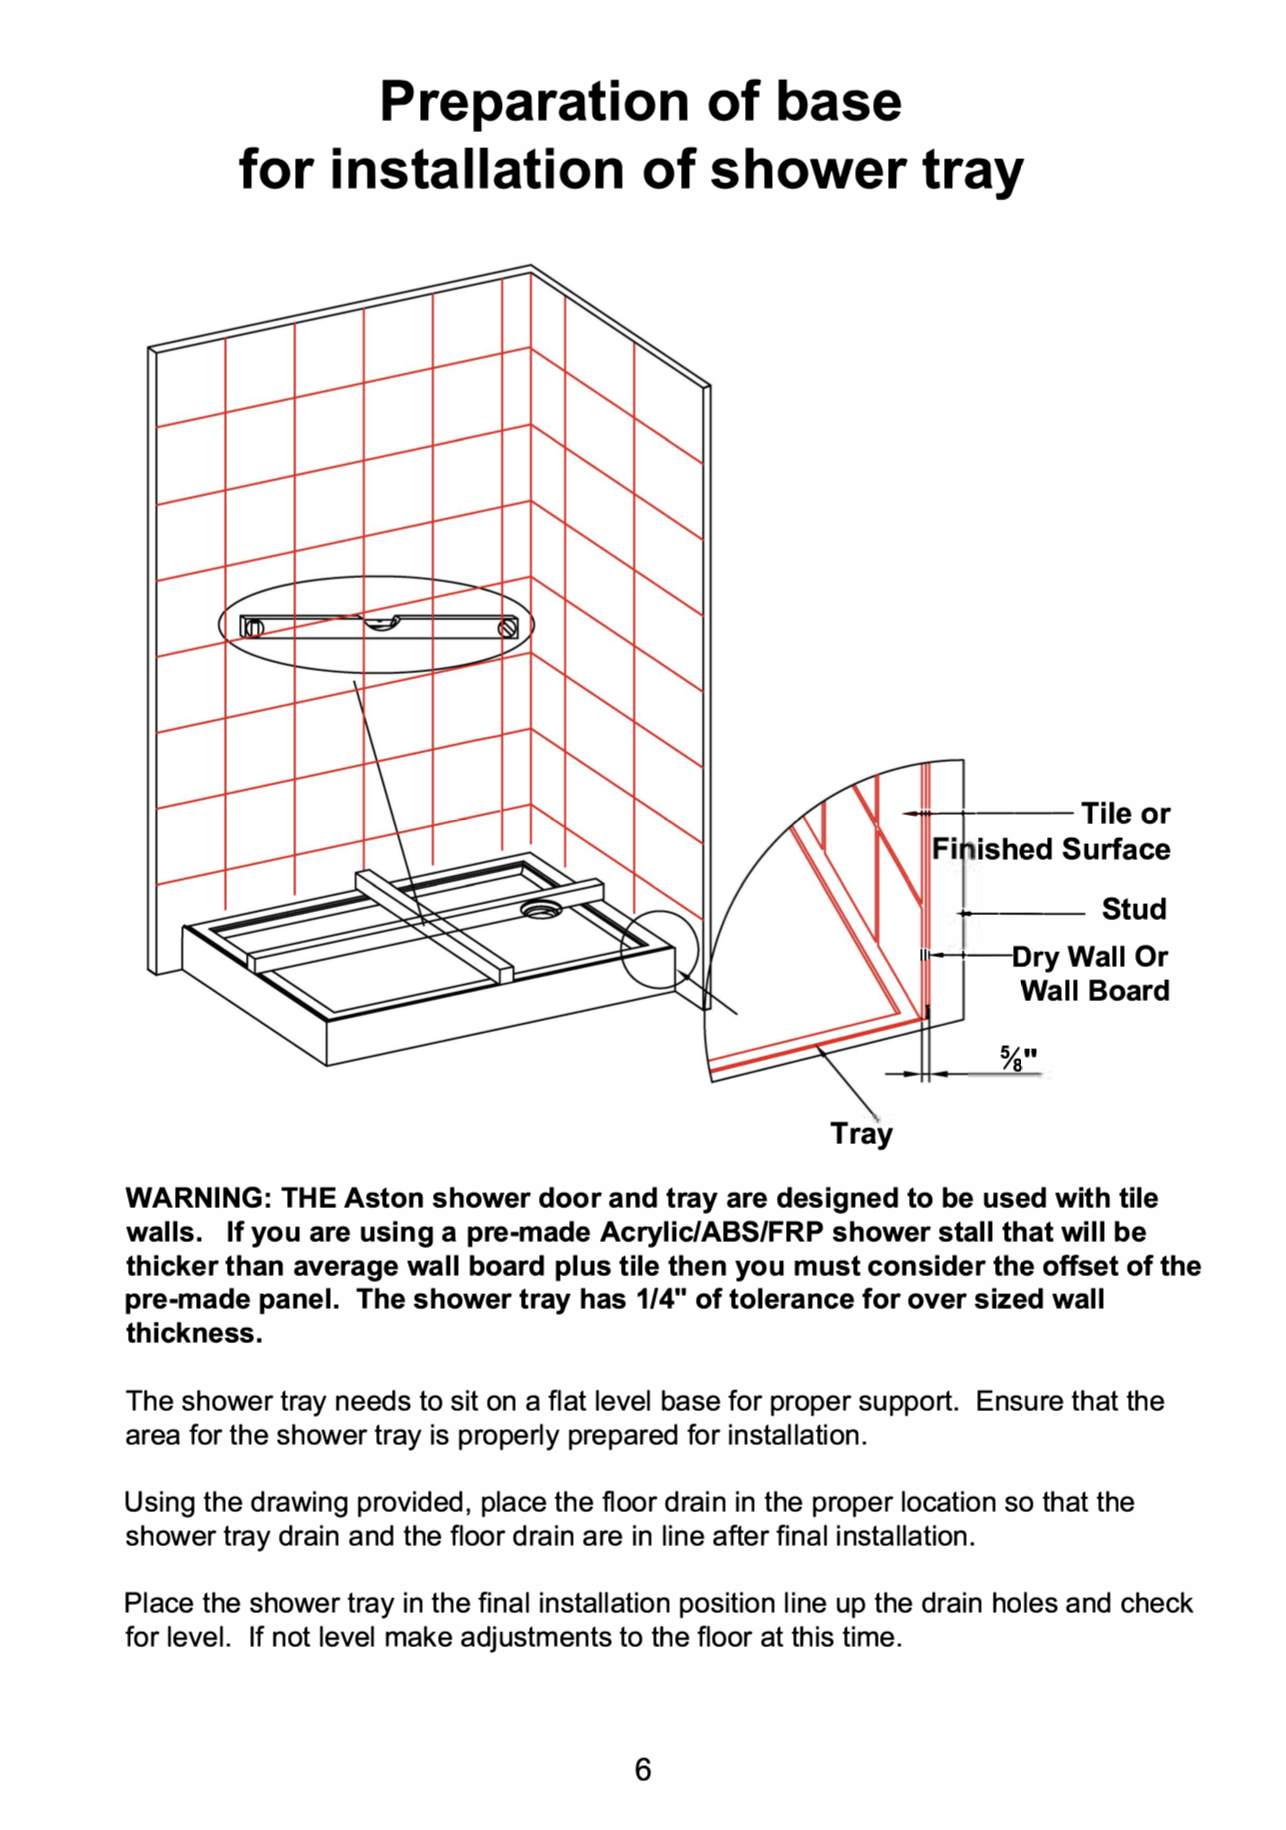 waterproofing shower pan to cement board-screen-shot-2019-04-15-5.03.02-pm.png